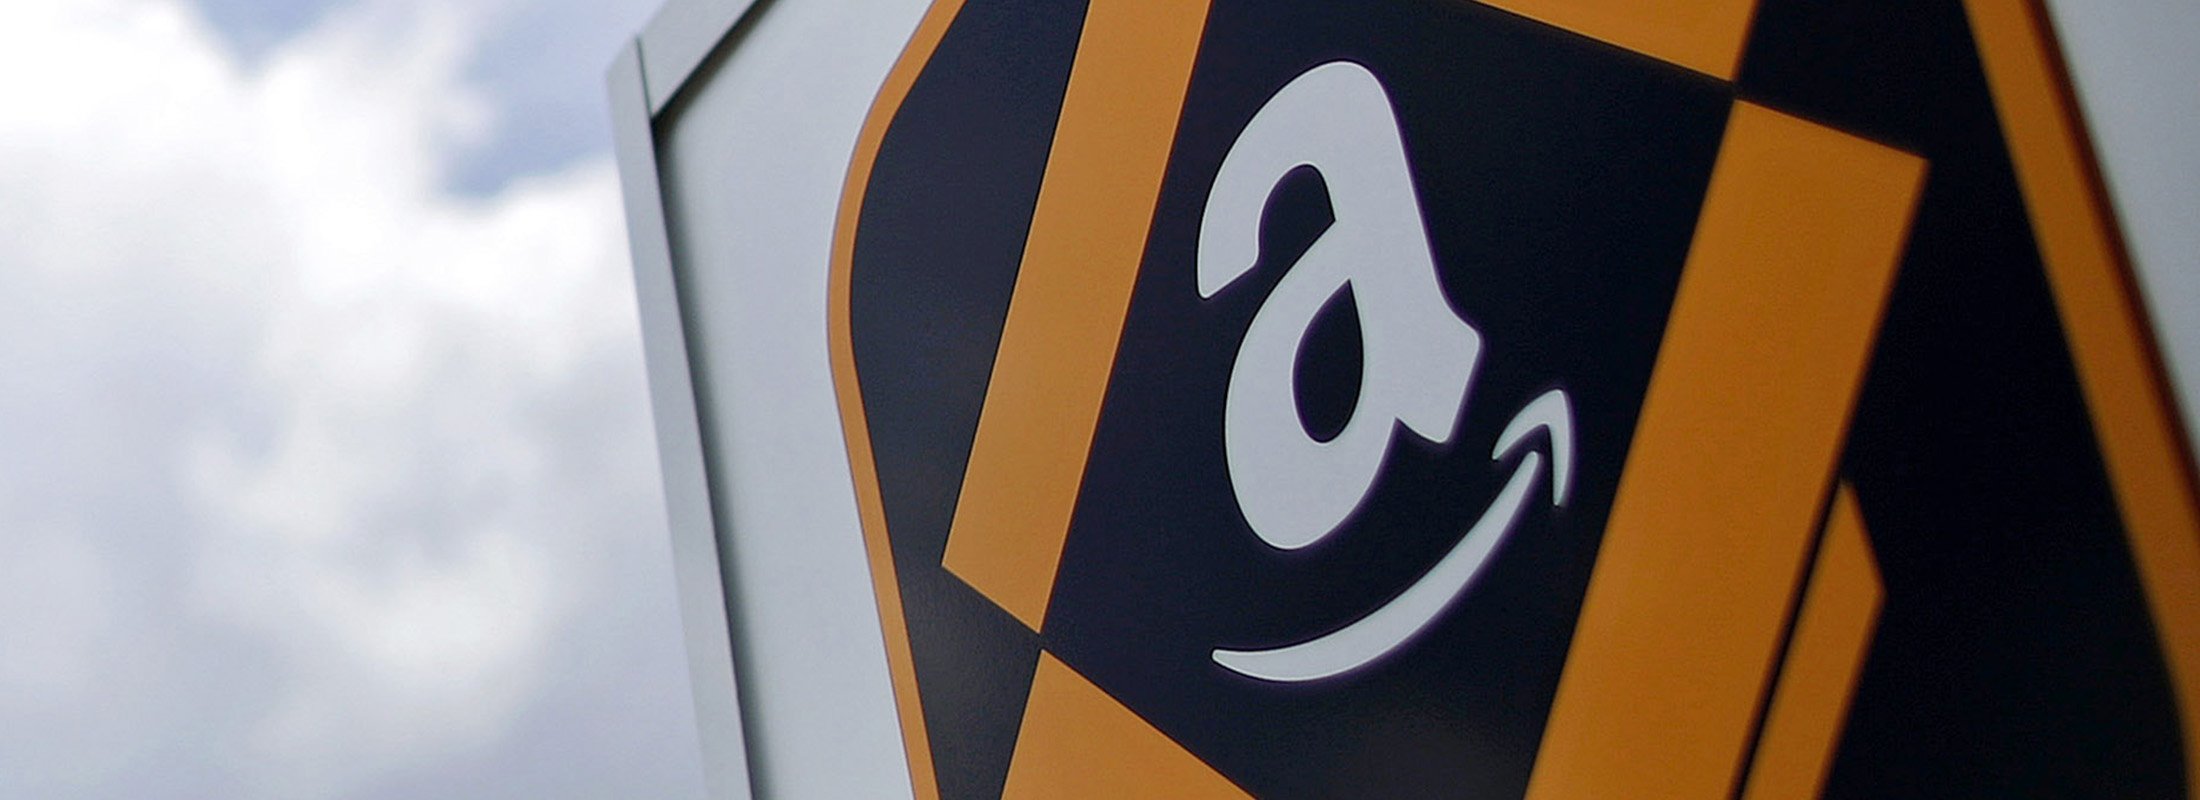 Amazon's new projects in the Buffalo area would likely be warehouse and distribution facilities, sources told The News. (Jim Young/Bloomberg file photo)